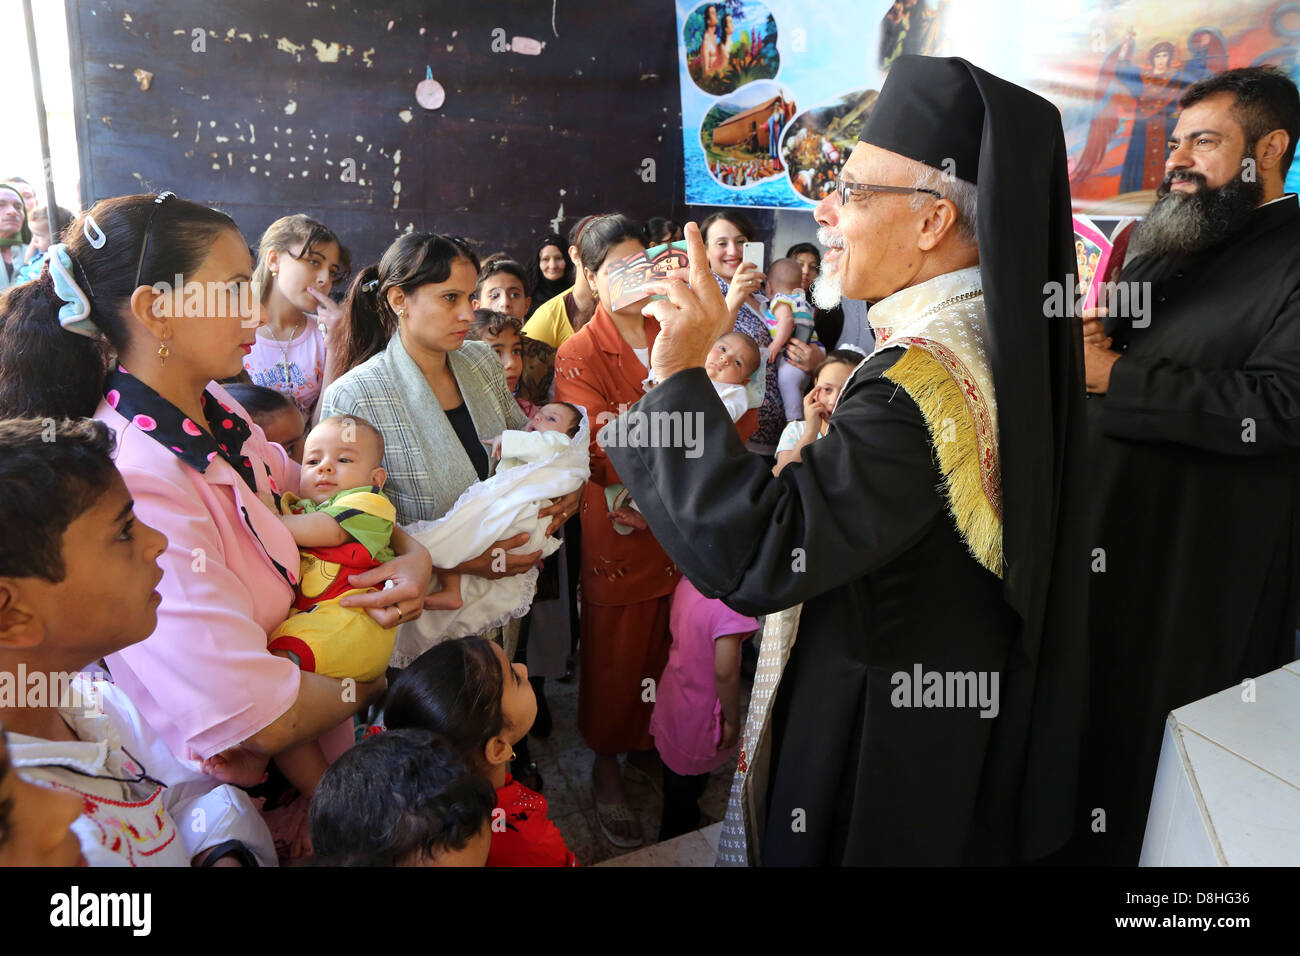 baptism ceremony of babies by catholic coptic bishop KYRILLOS WILLIAM of Asyut diocese, Egypt - Stock Image